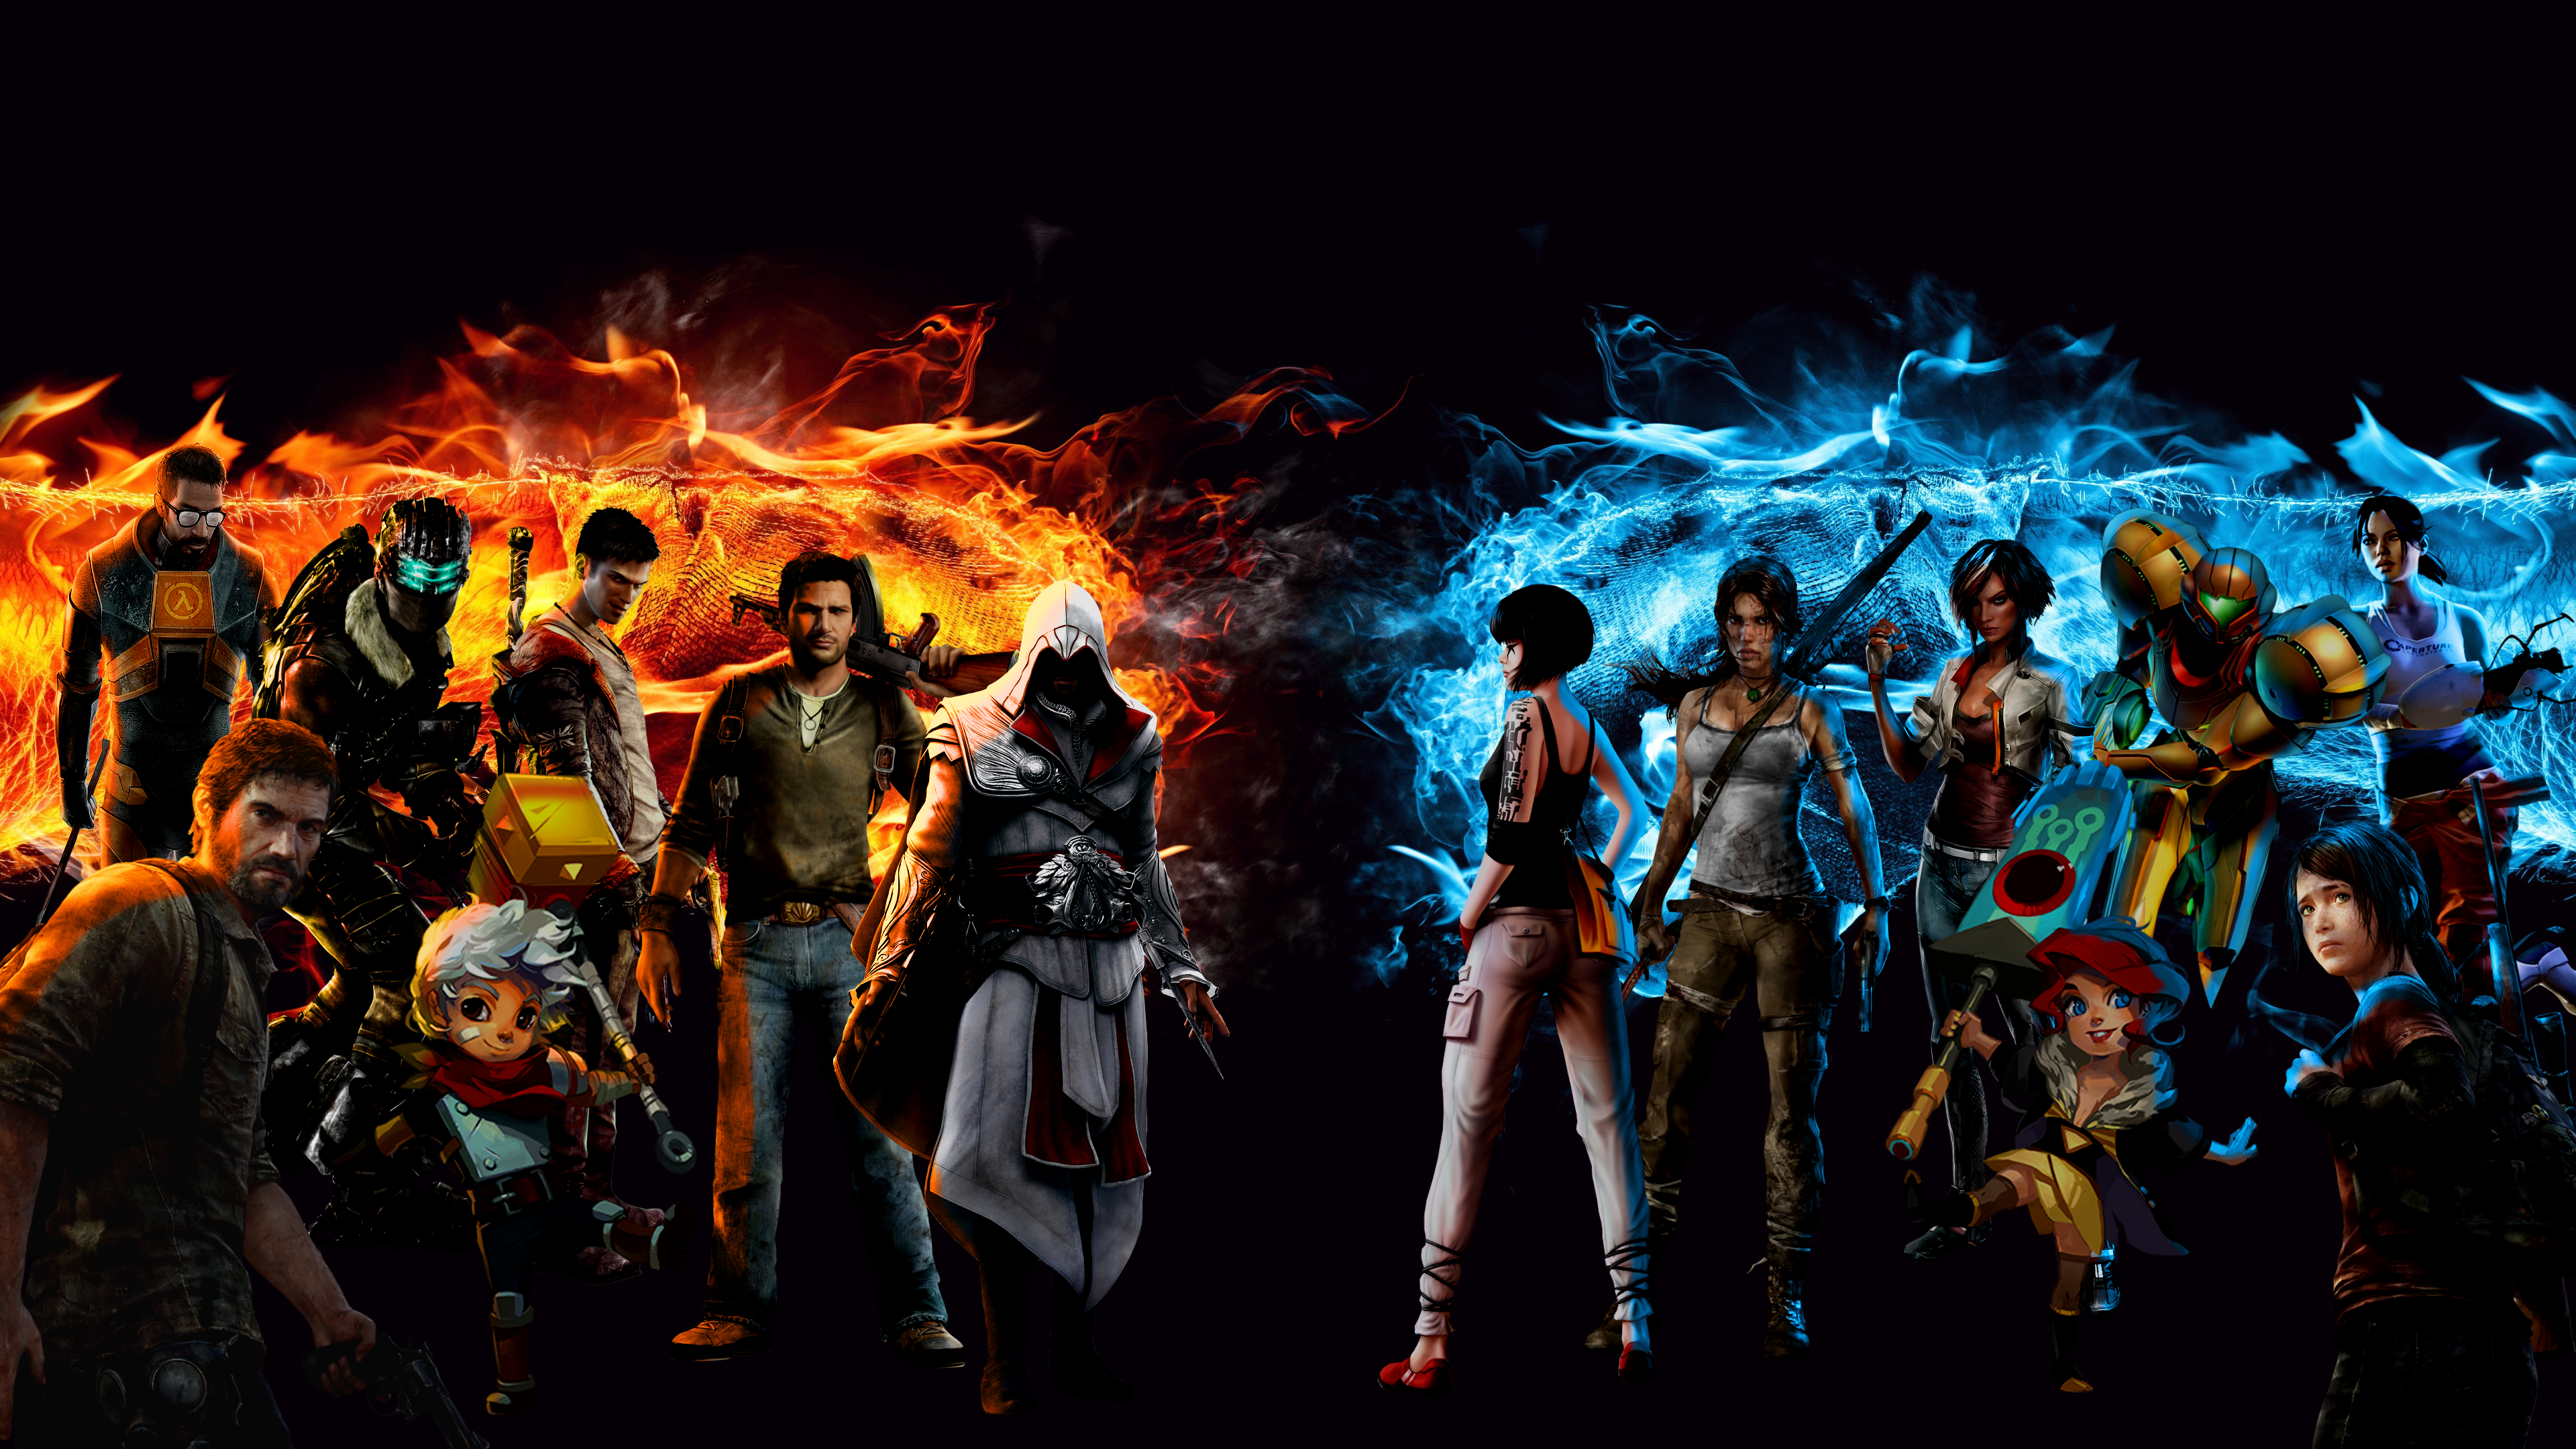 Video game legends mashup 4k ultra hd wallpaper background image 3840x2160 id 602737 - Epic wallpapers 2560x1440 ...